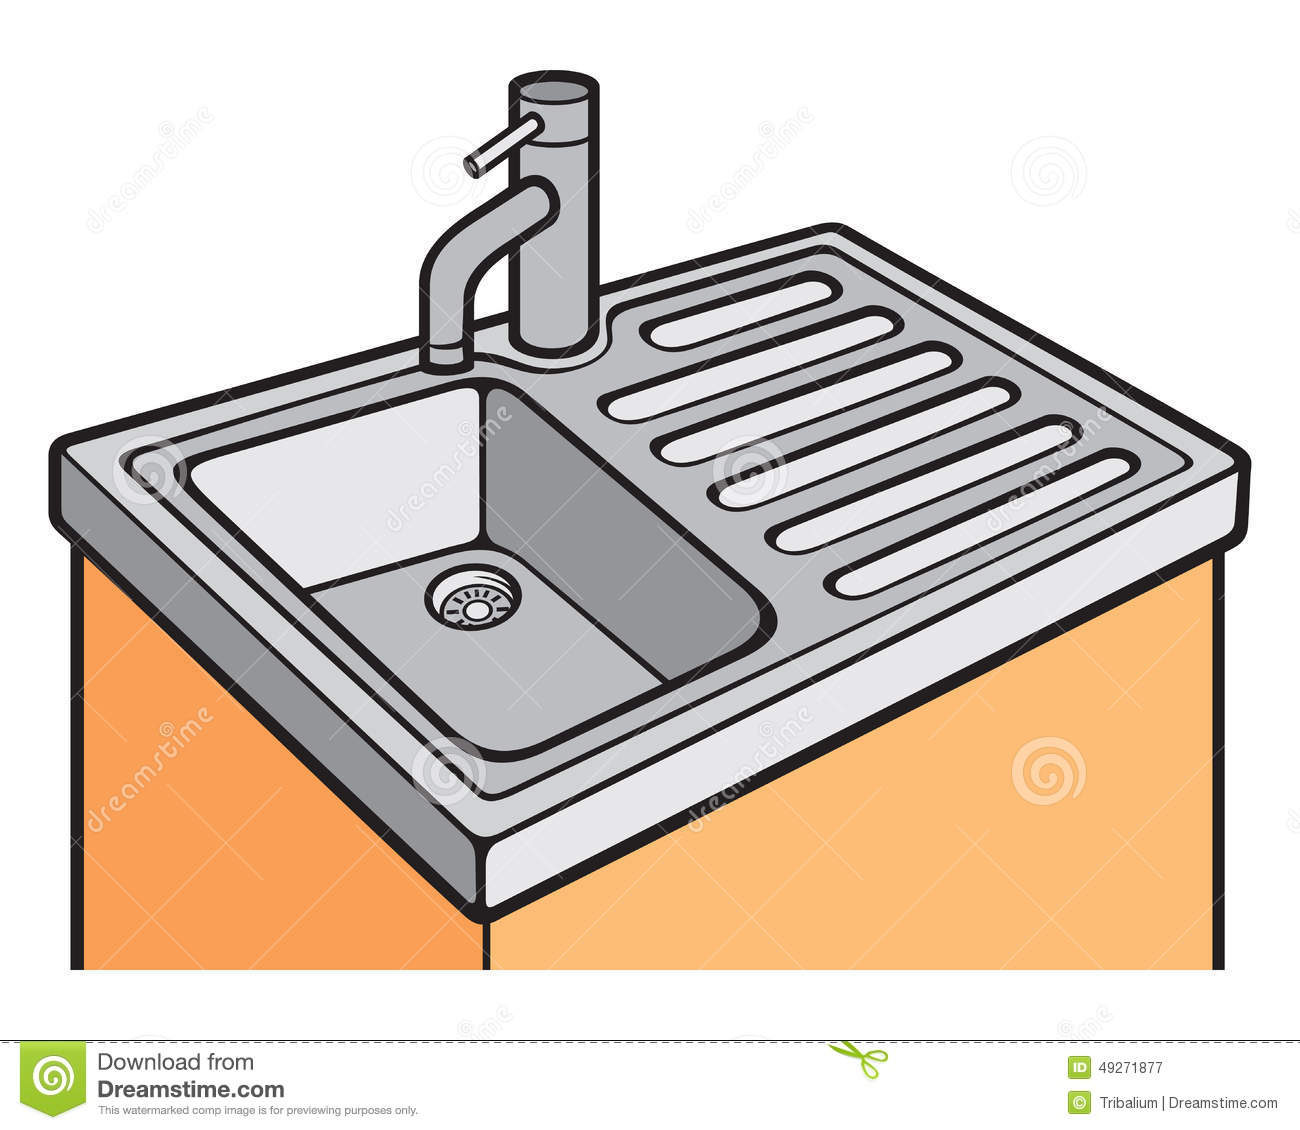 Kitchen sink stock vector. Image of pipe, furniture, handle - 49271877